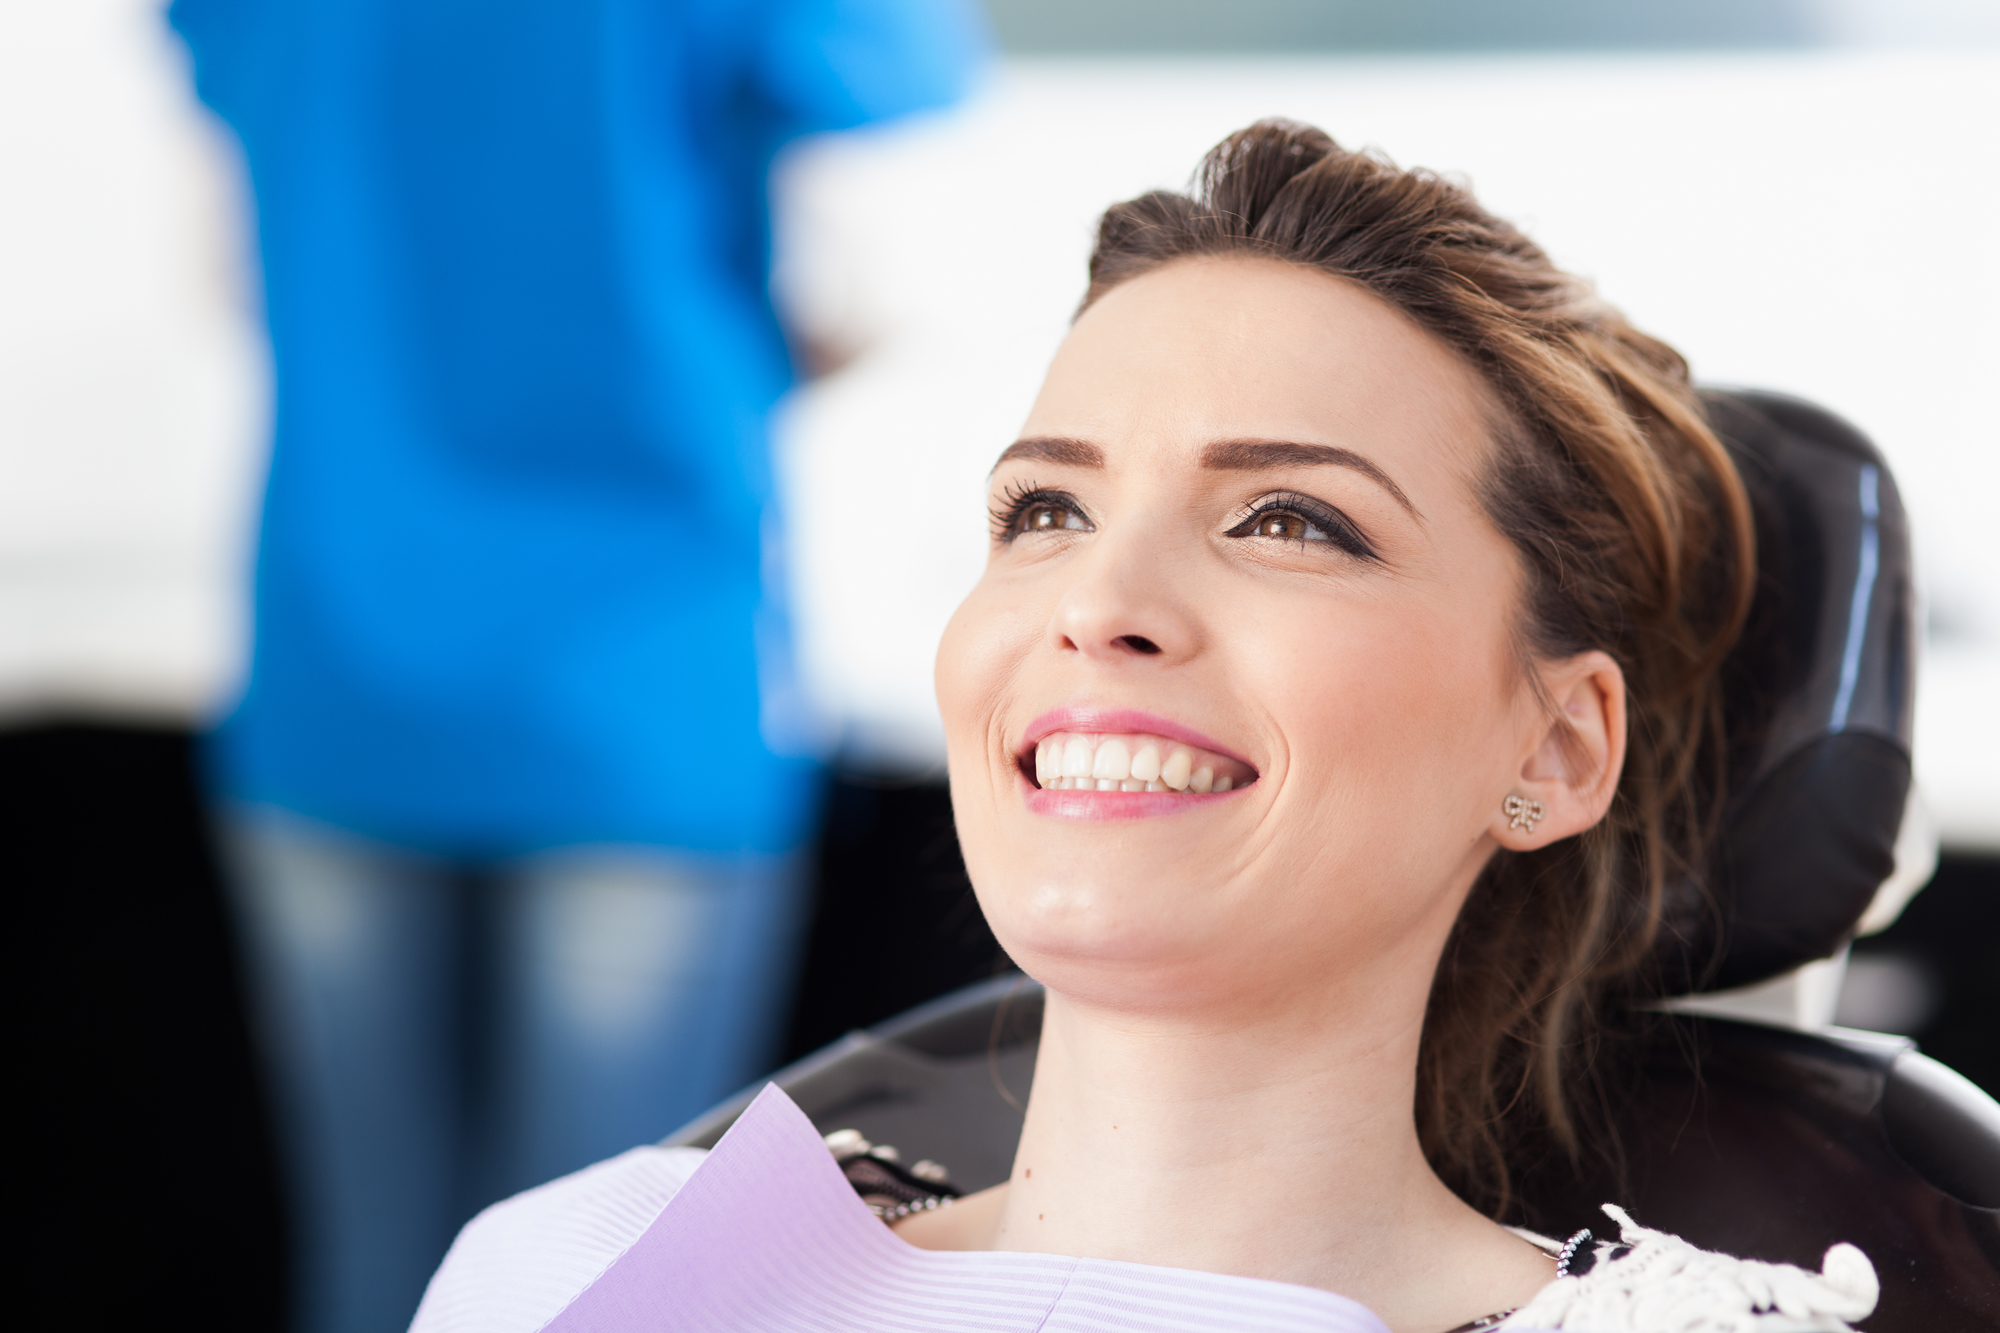 who offers the best tmj pembroke pines?